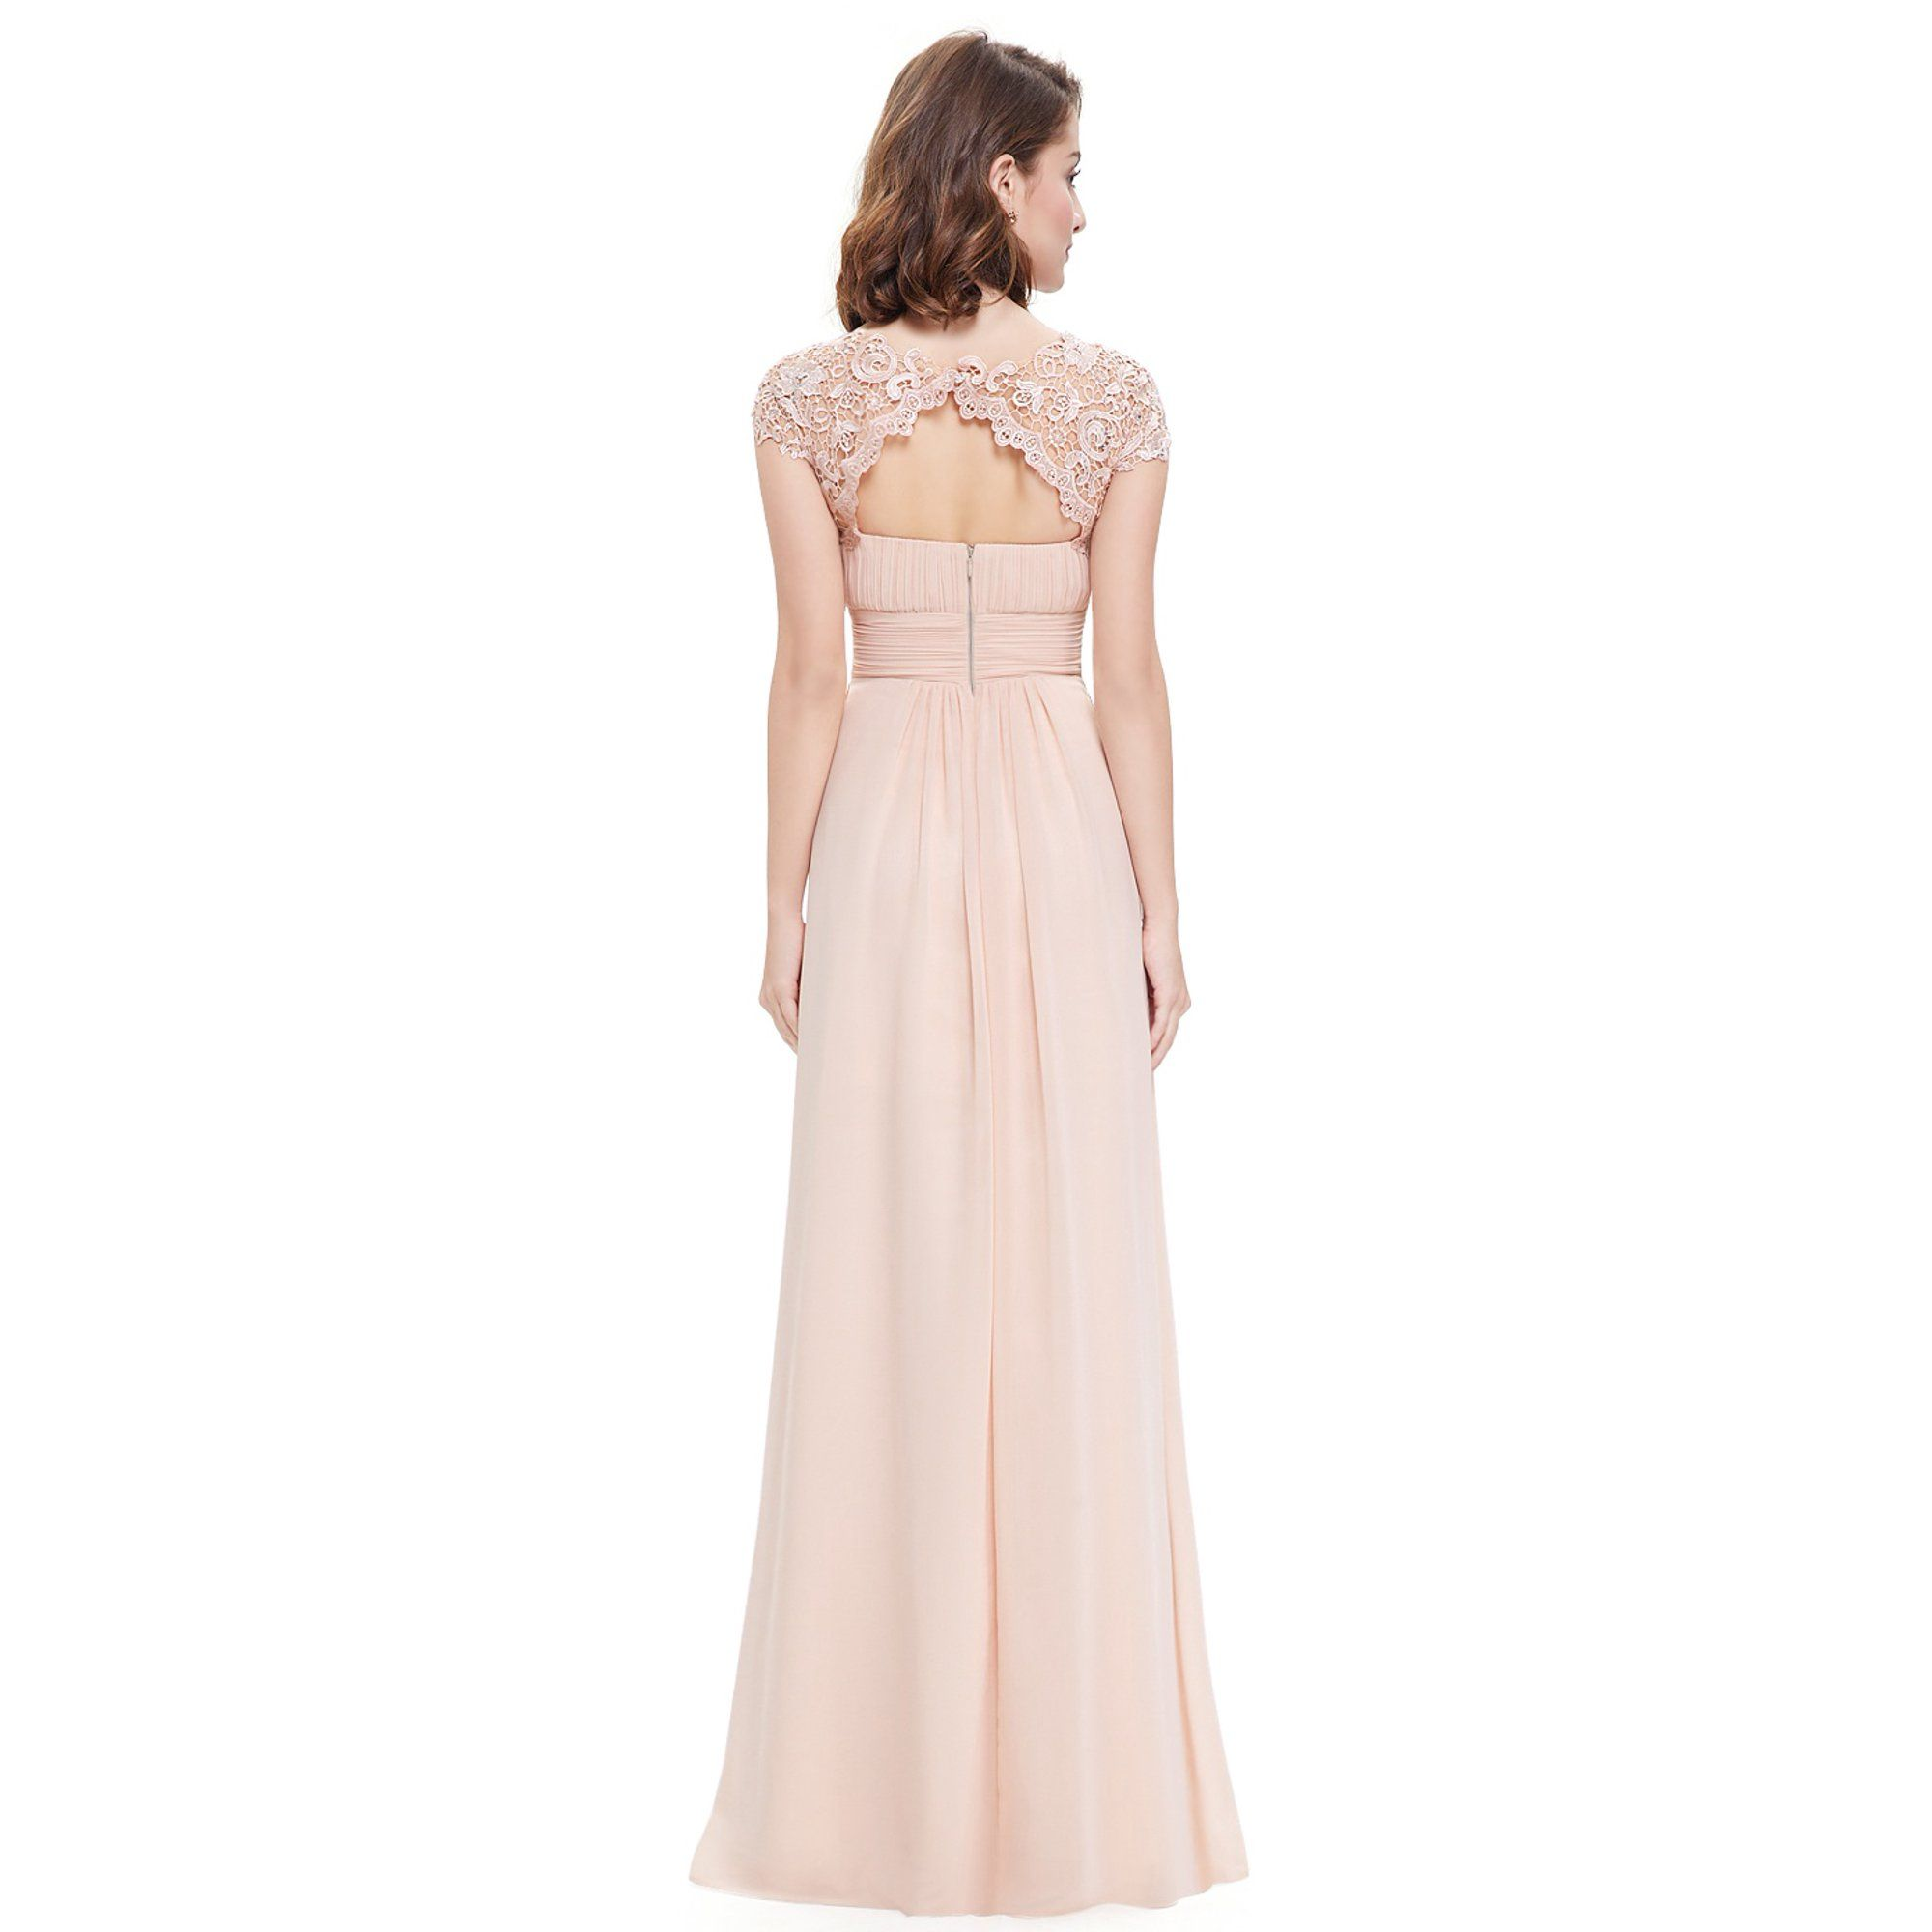 Ever Pretty Ever Pretty Womens Floral Lace Pleated Long Evening Dresses For Women 09993 Gray Us18 Walmart Com Bridesmaid Dresses Long Chiffon Green Chiffon Bridesmaid Dress Green Bridesmaid Dresses [ 2000 x 2000 Pixel ]